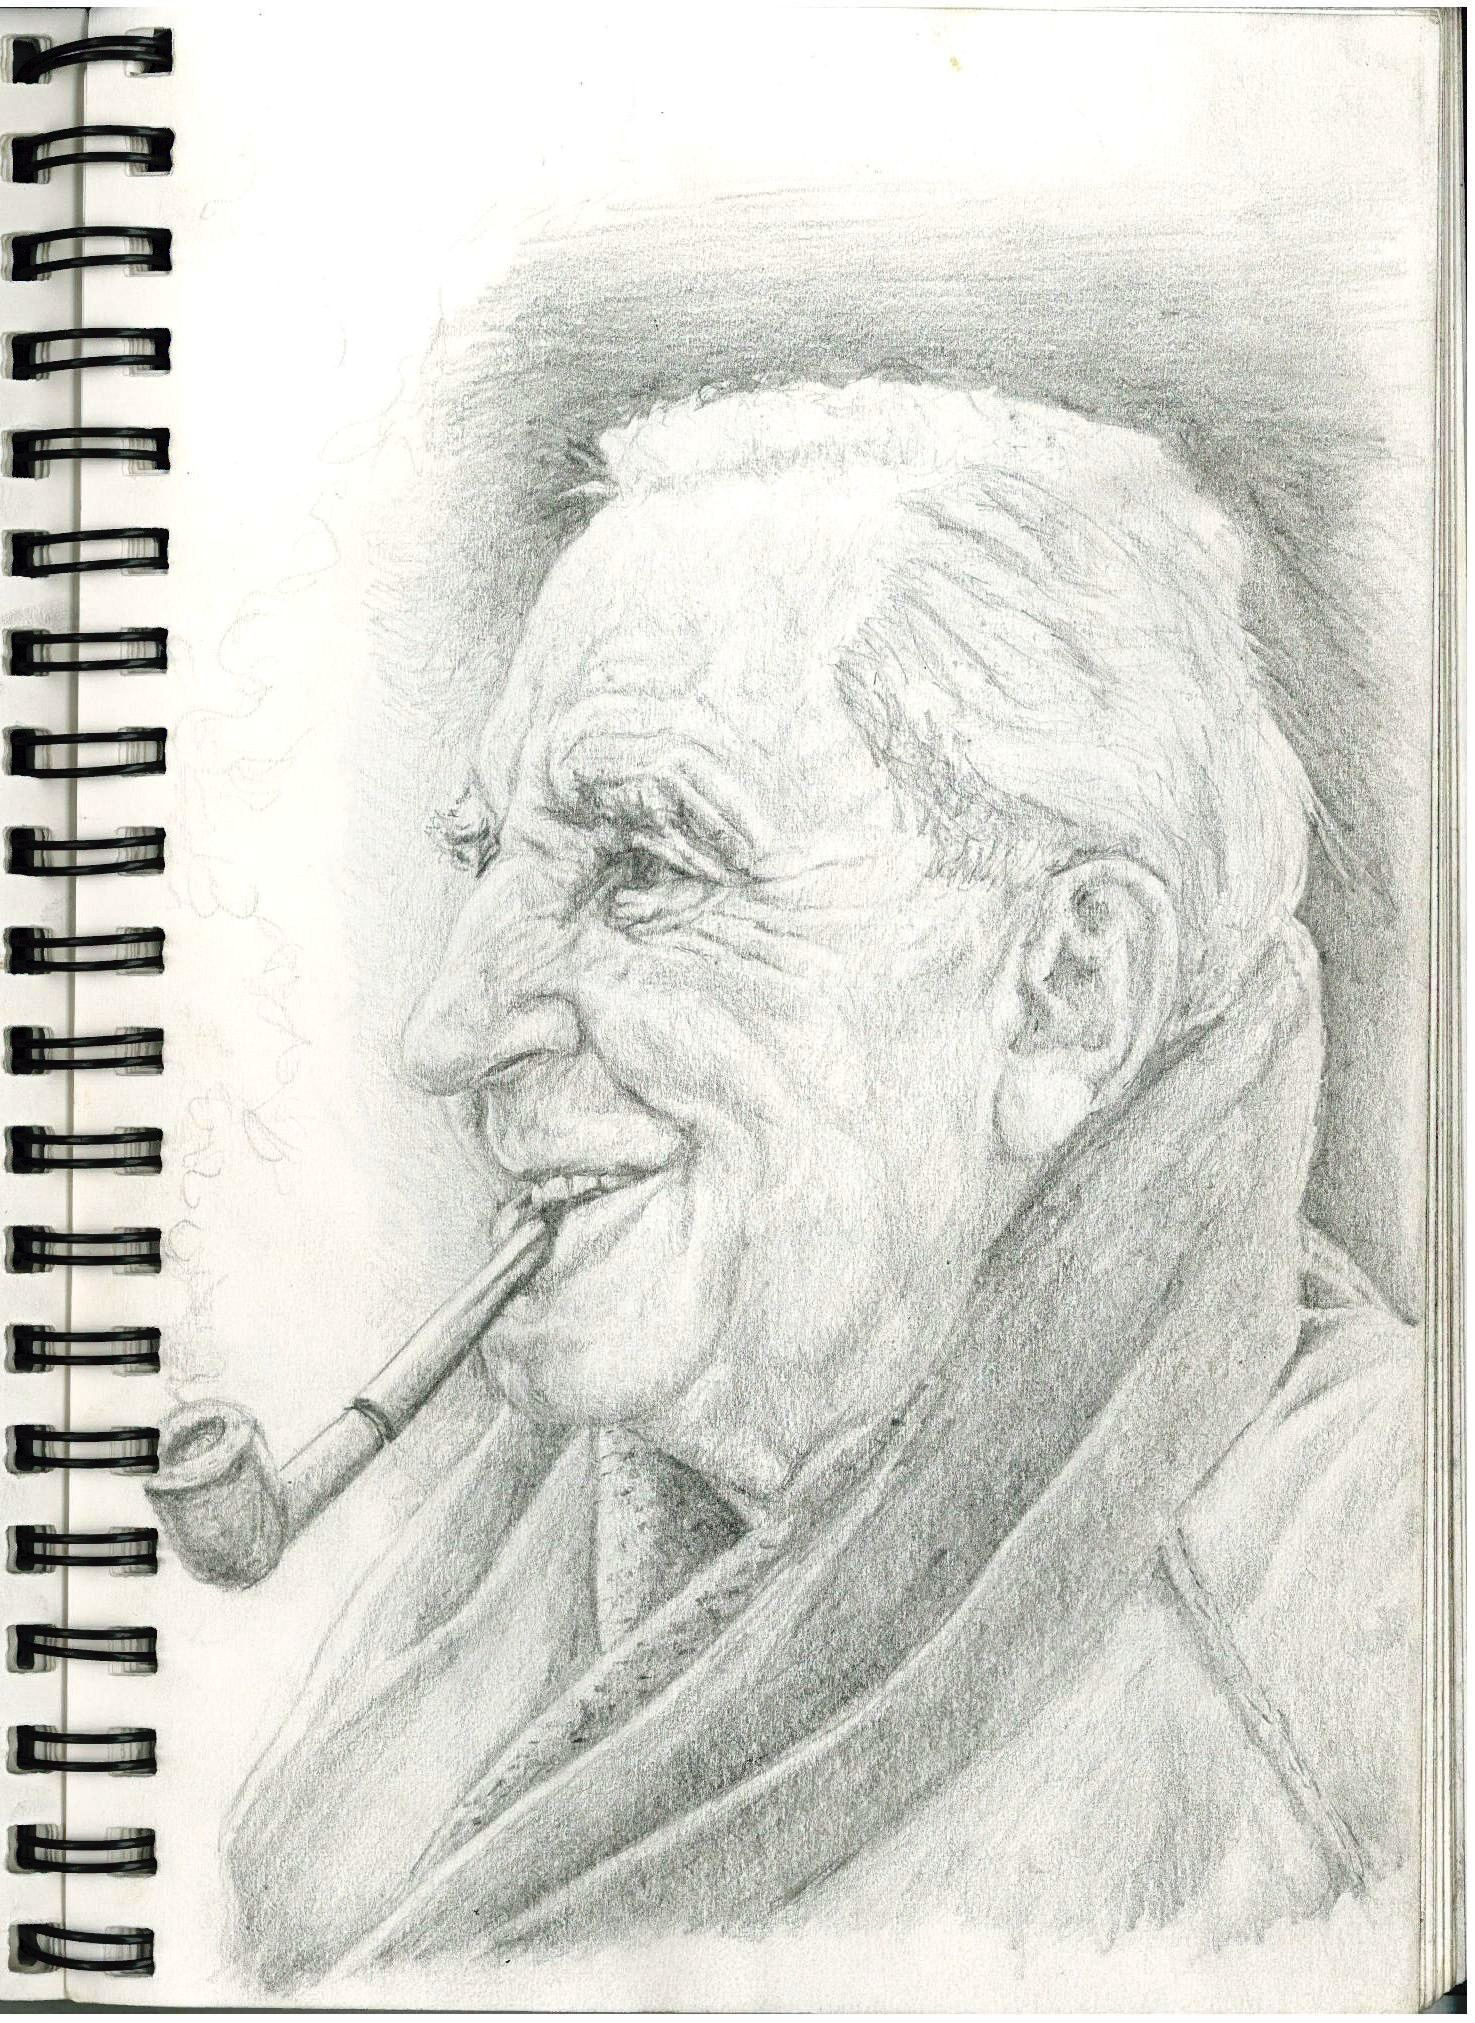 a biography of the author jrr tolkien Jrr tolkien biography - philologist, author, mythmaker and creator of middle  earth.